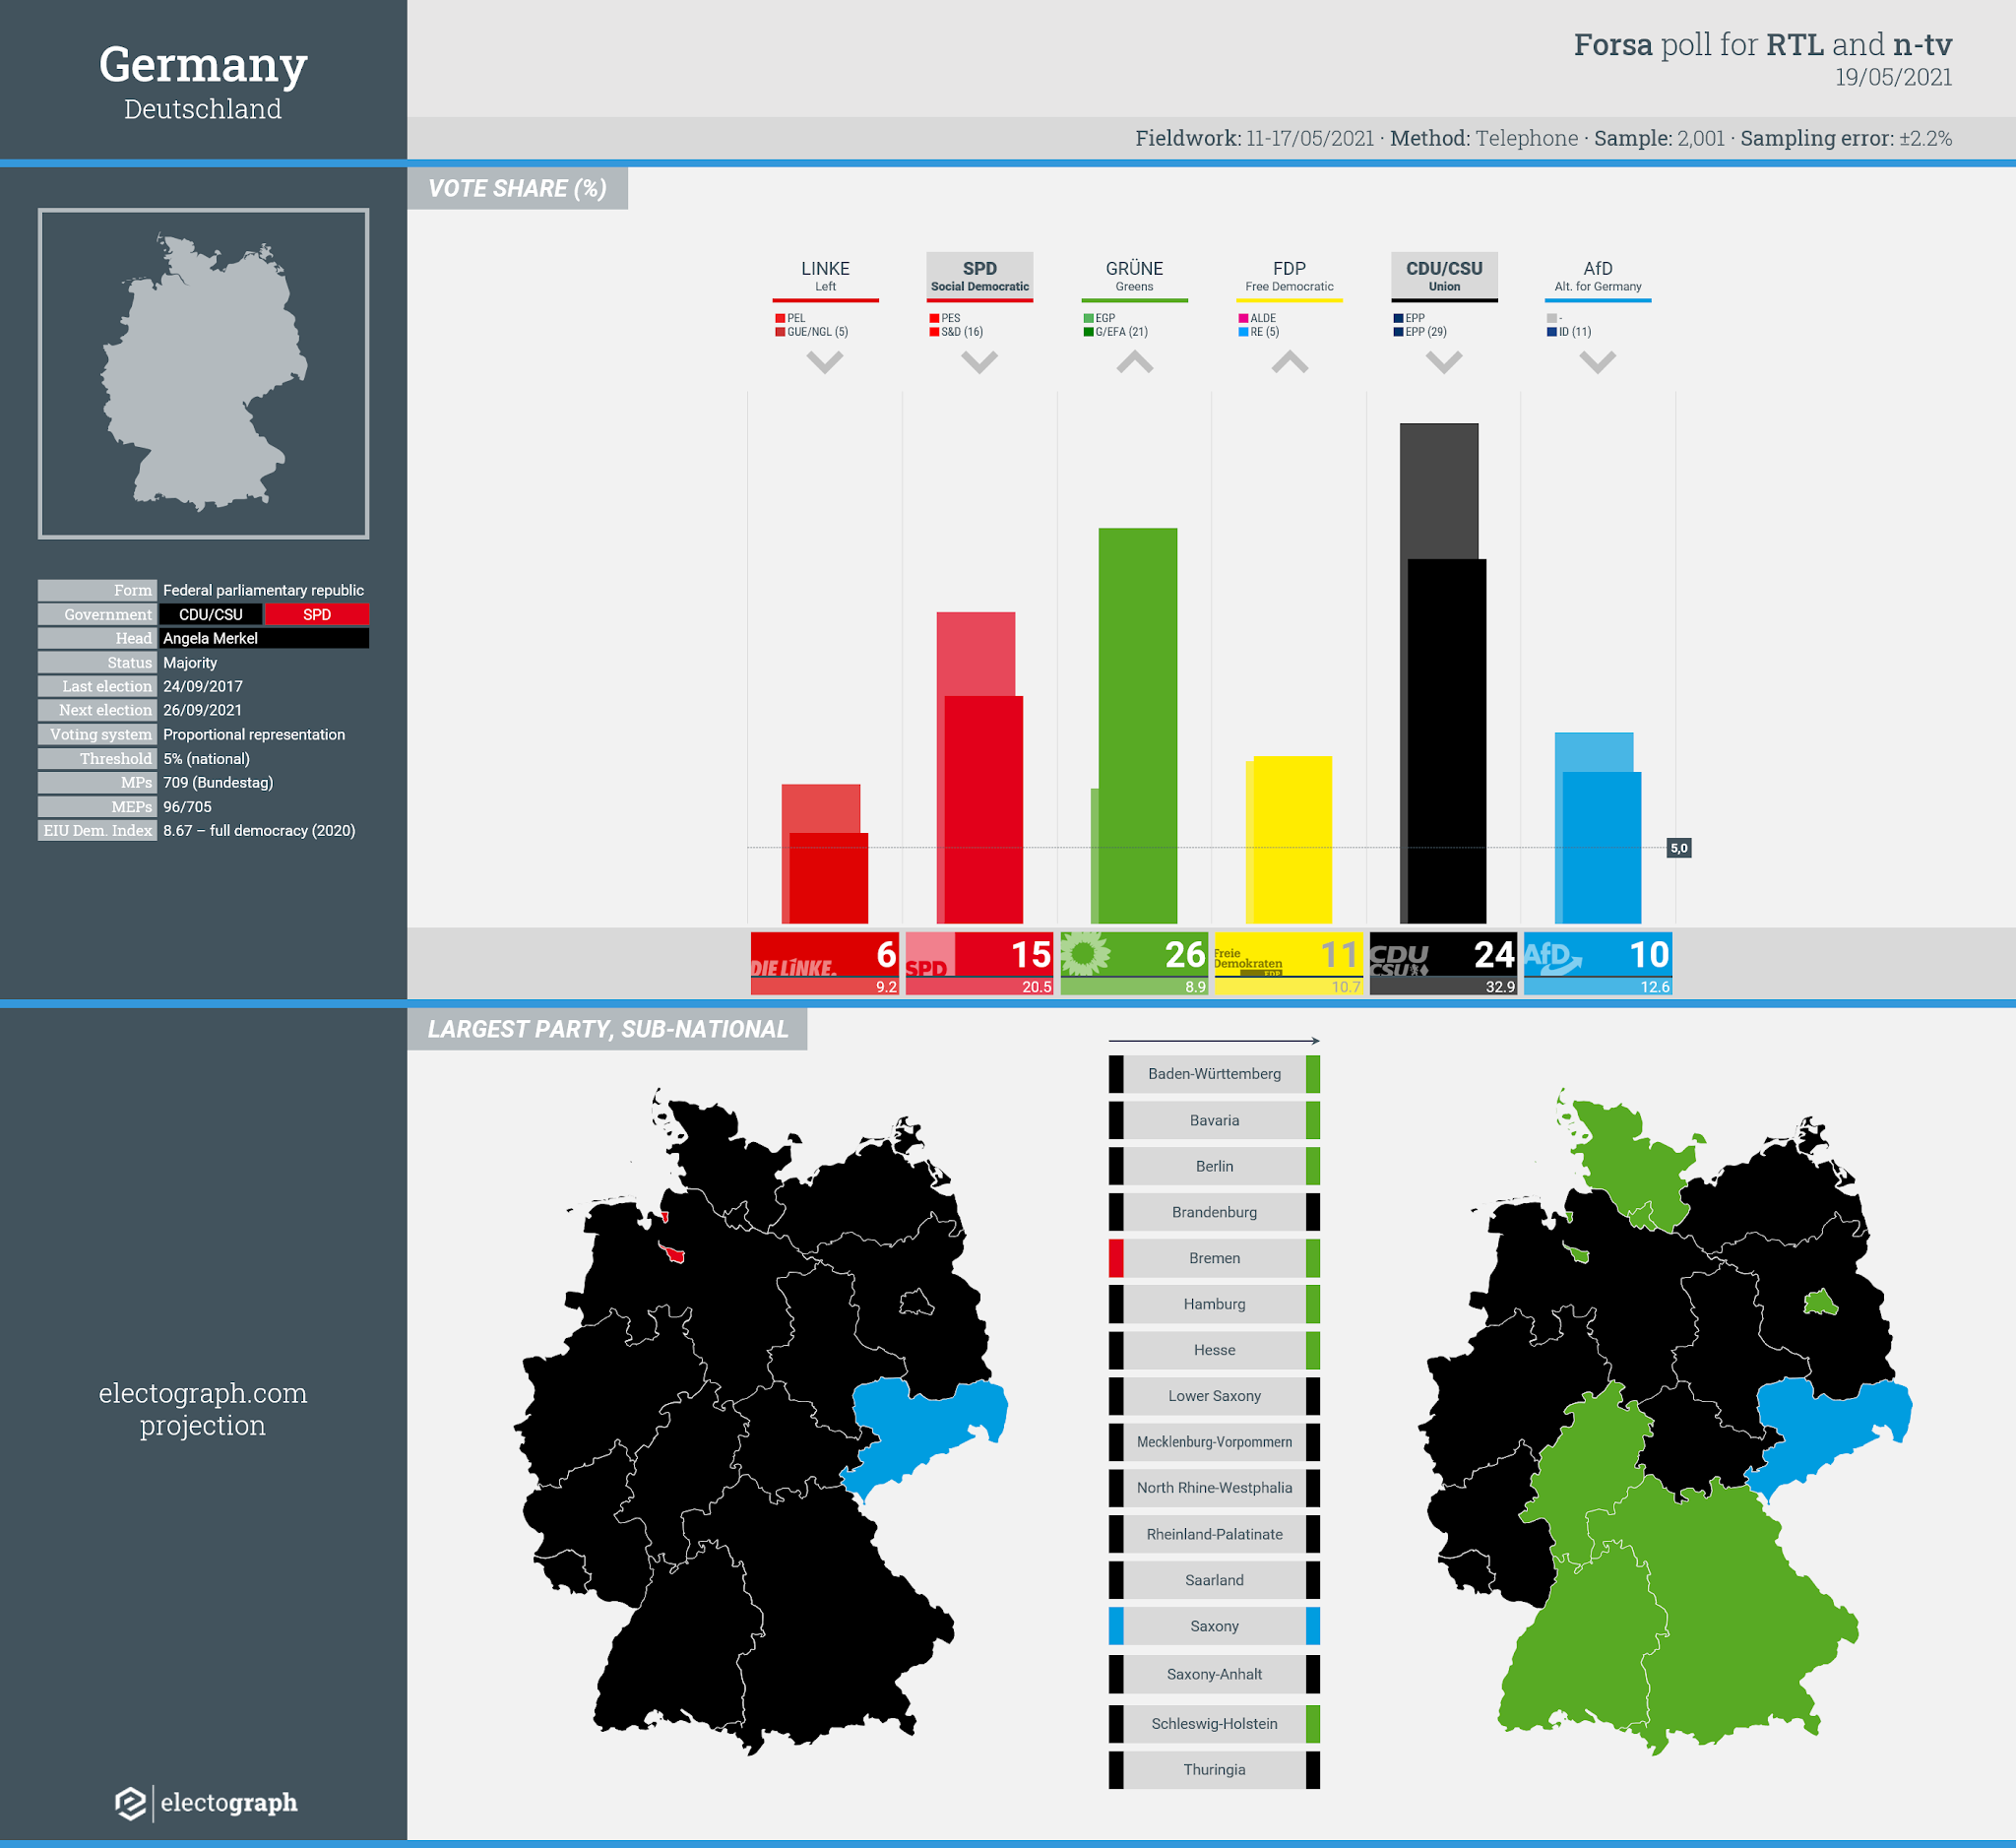 GERMANY: Forsa poll chart for RTL and n-tv, 19 May 2021